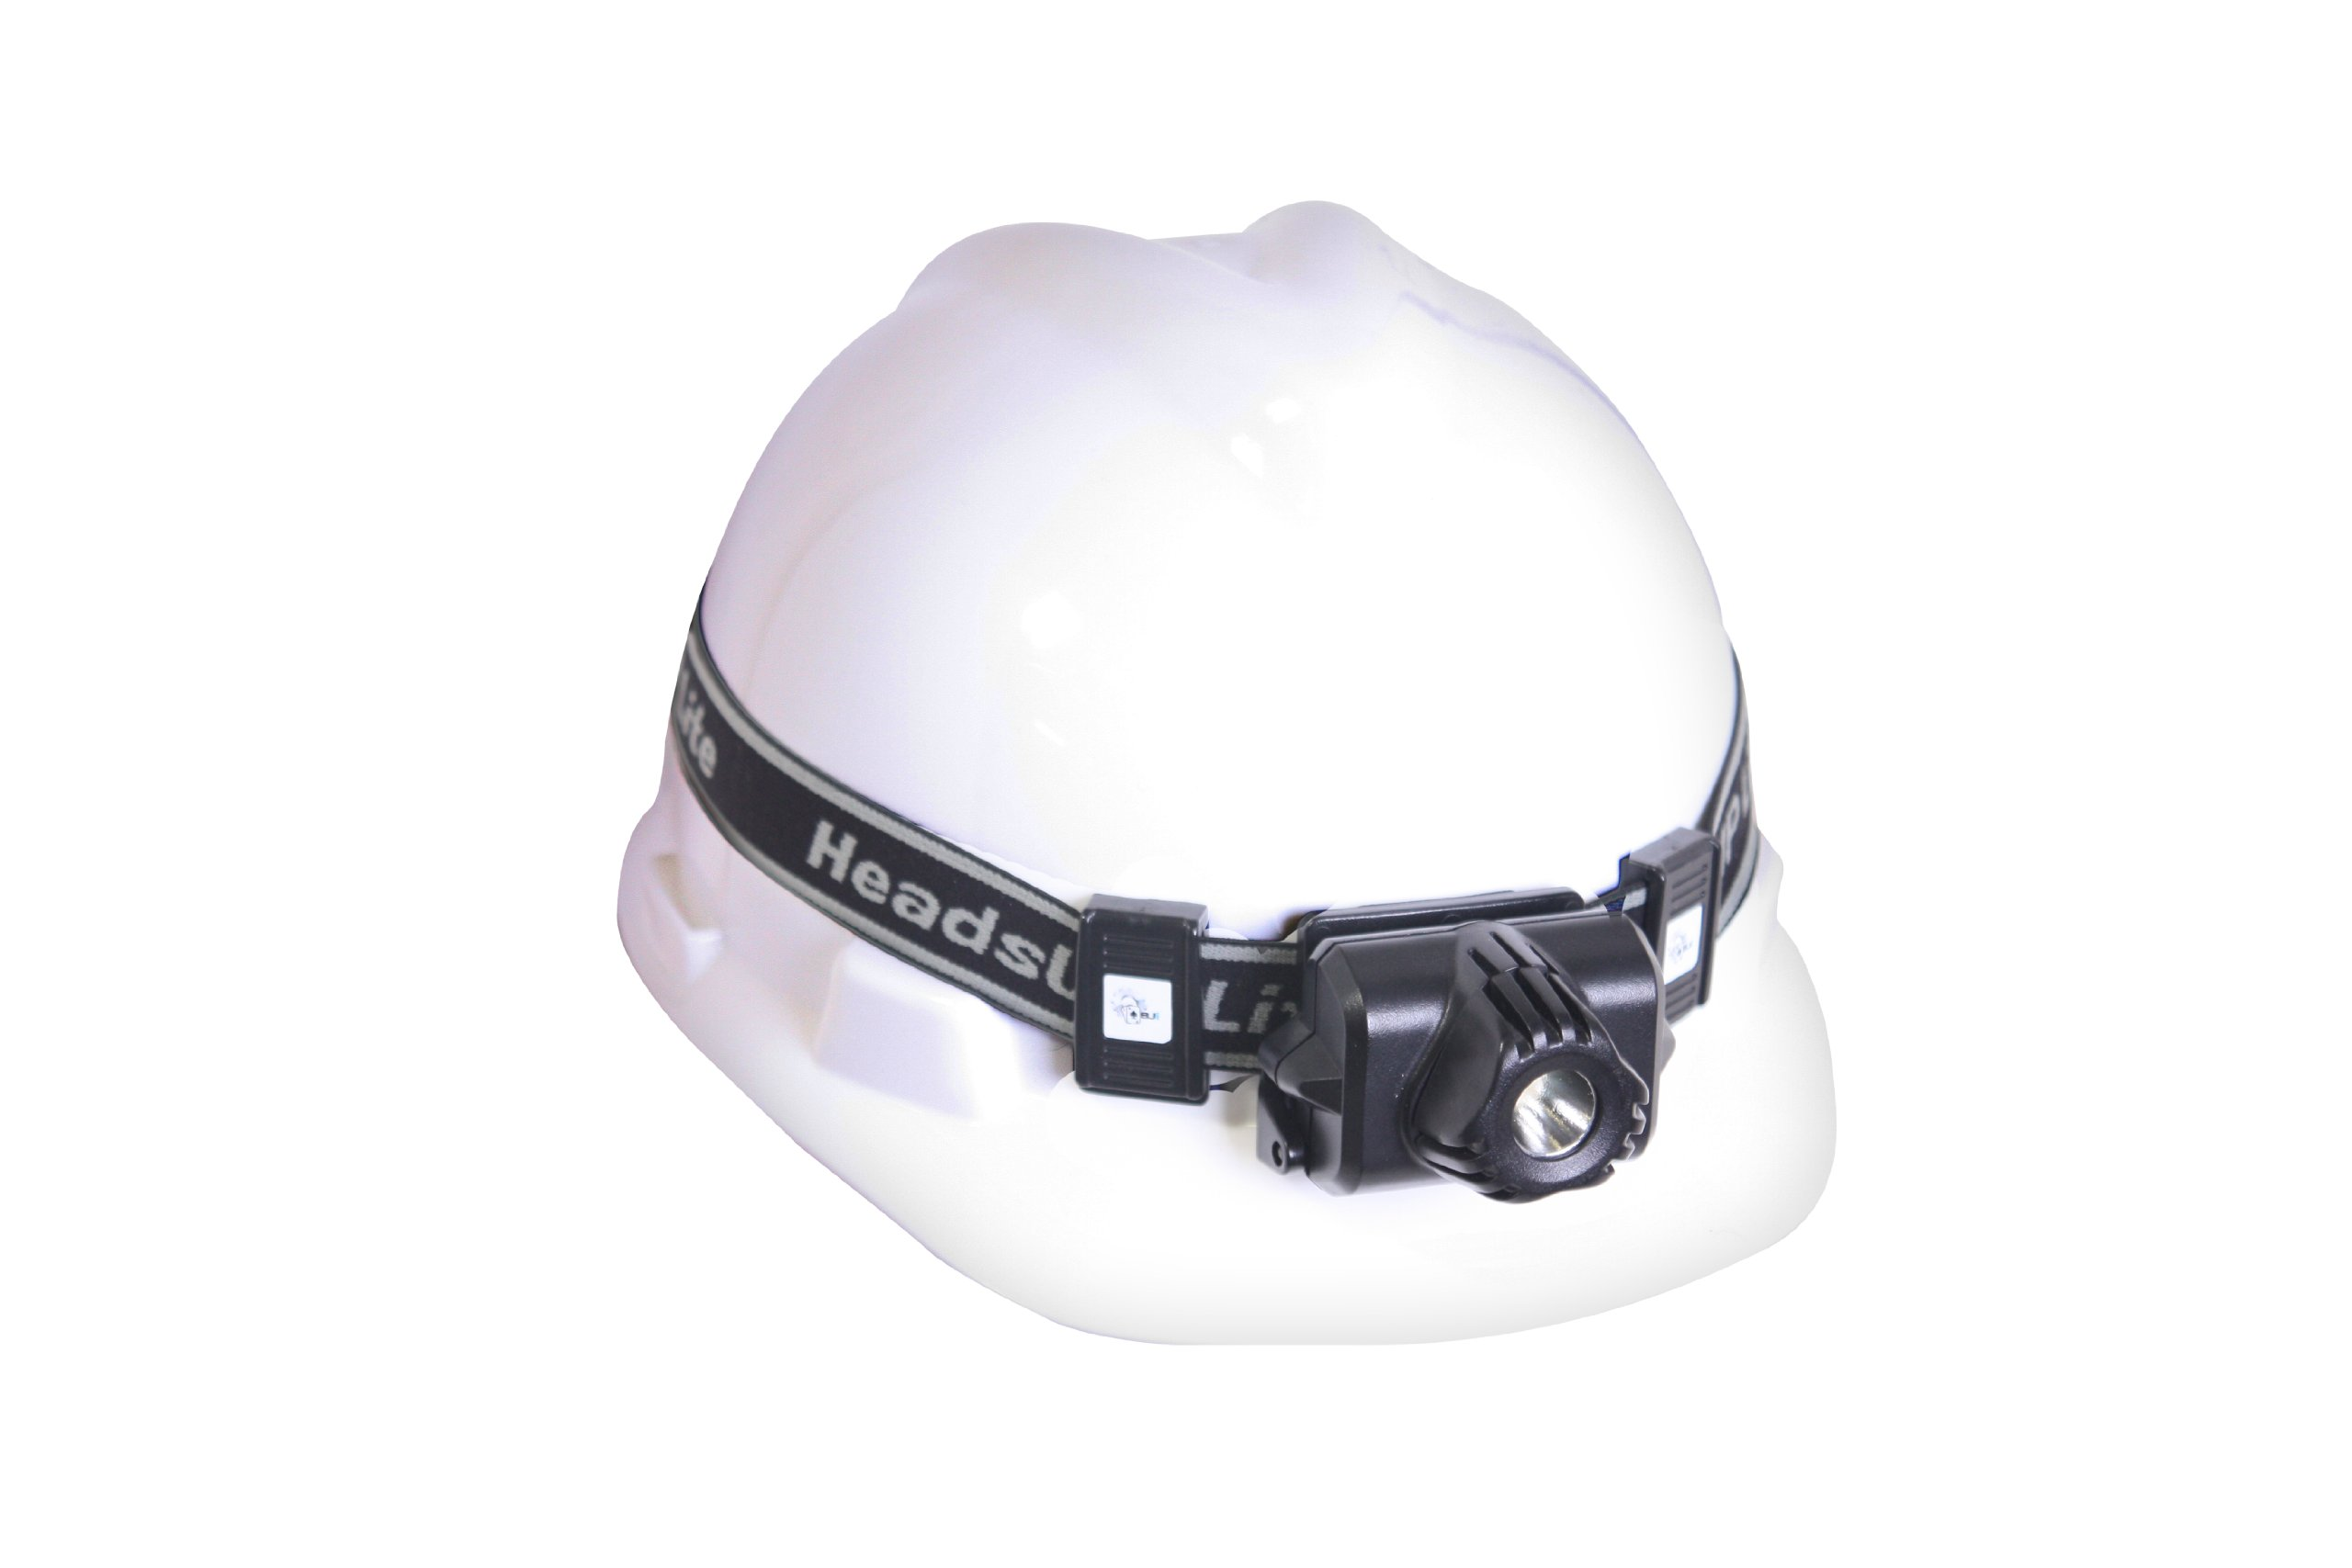 Blackjack Industrial BJi001 Hard Hat Clips for Headlamps and Lights | Fits all Hard Hats | Holds Lights and Straps Securely in Place | Utilities | Oil and Gas | Construction Workers (Pack of 4) by Blackjack Industrial (Image #4)